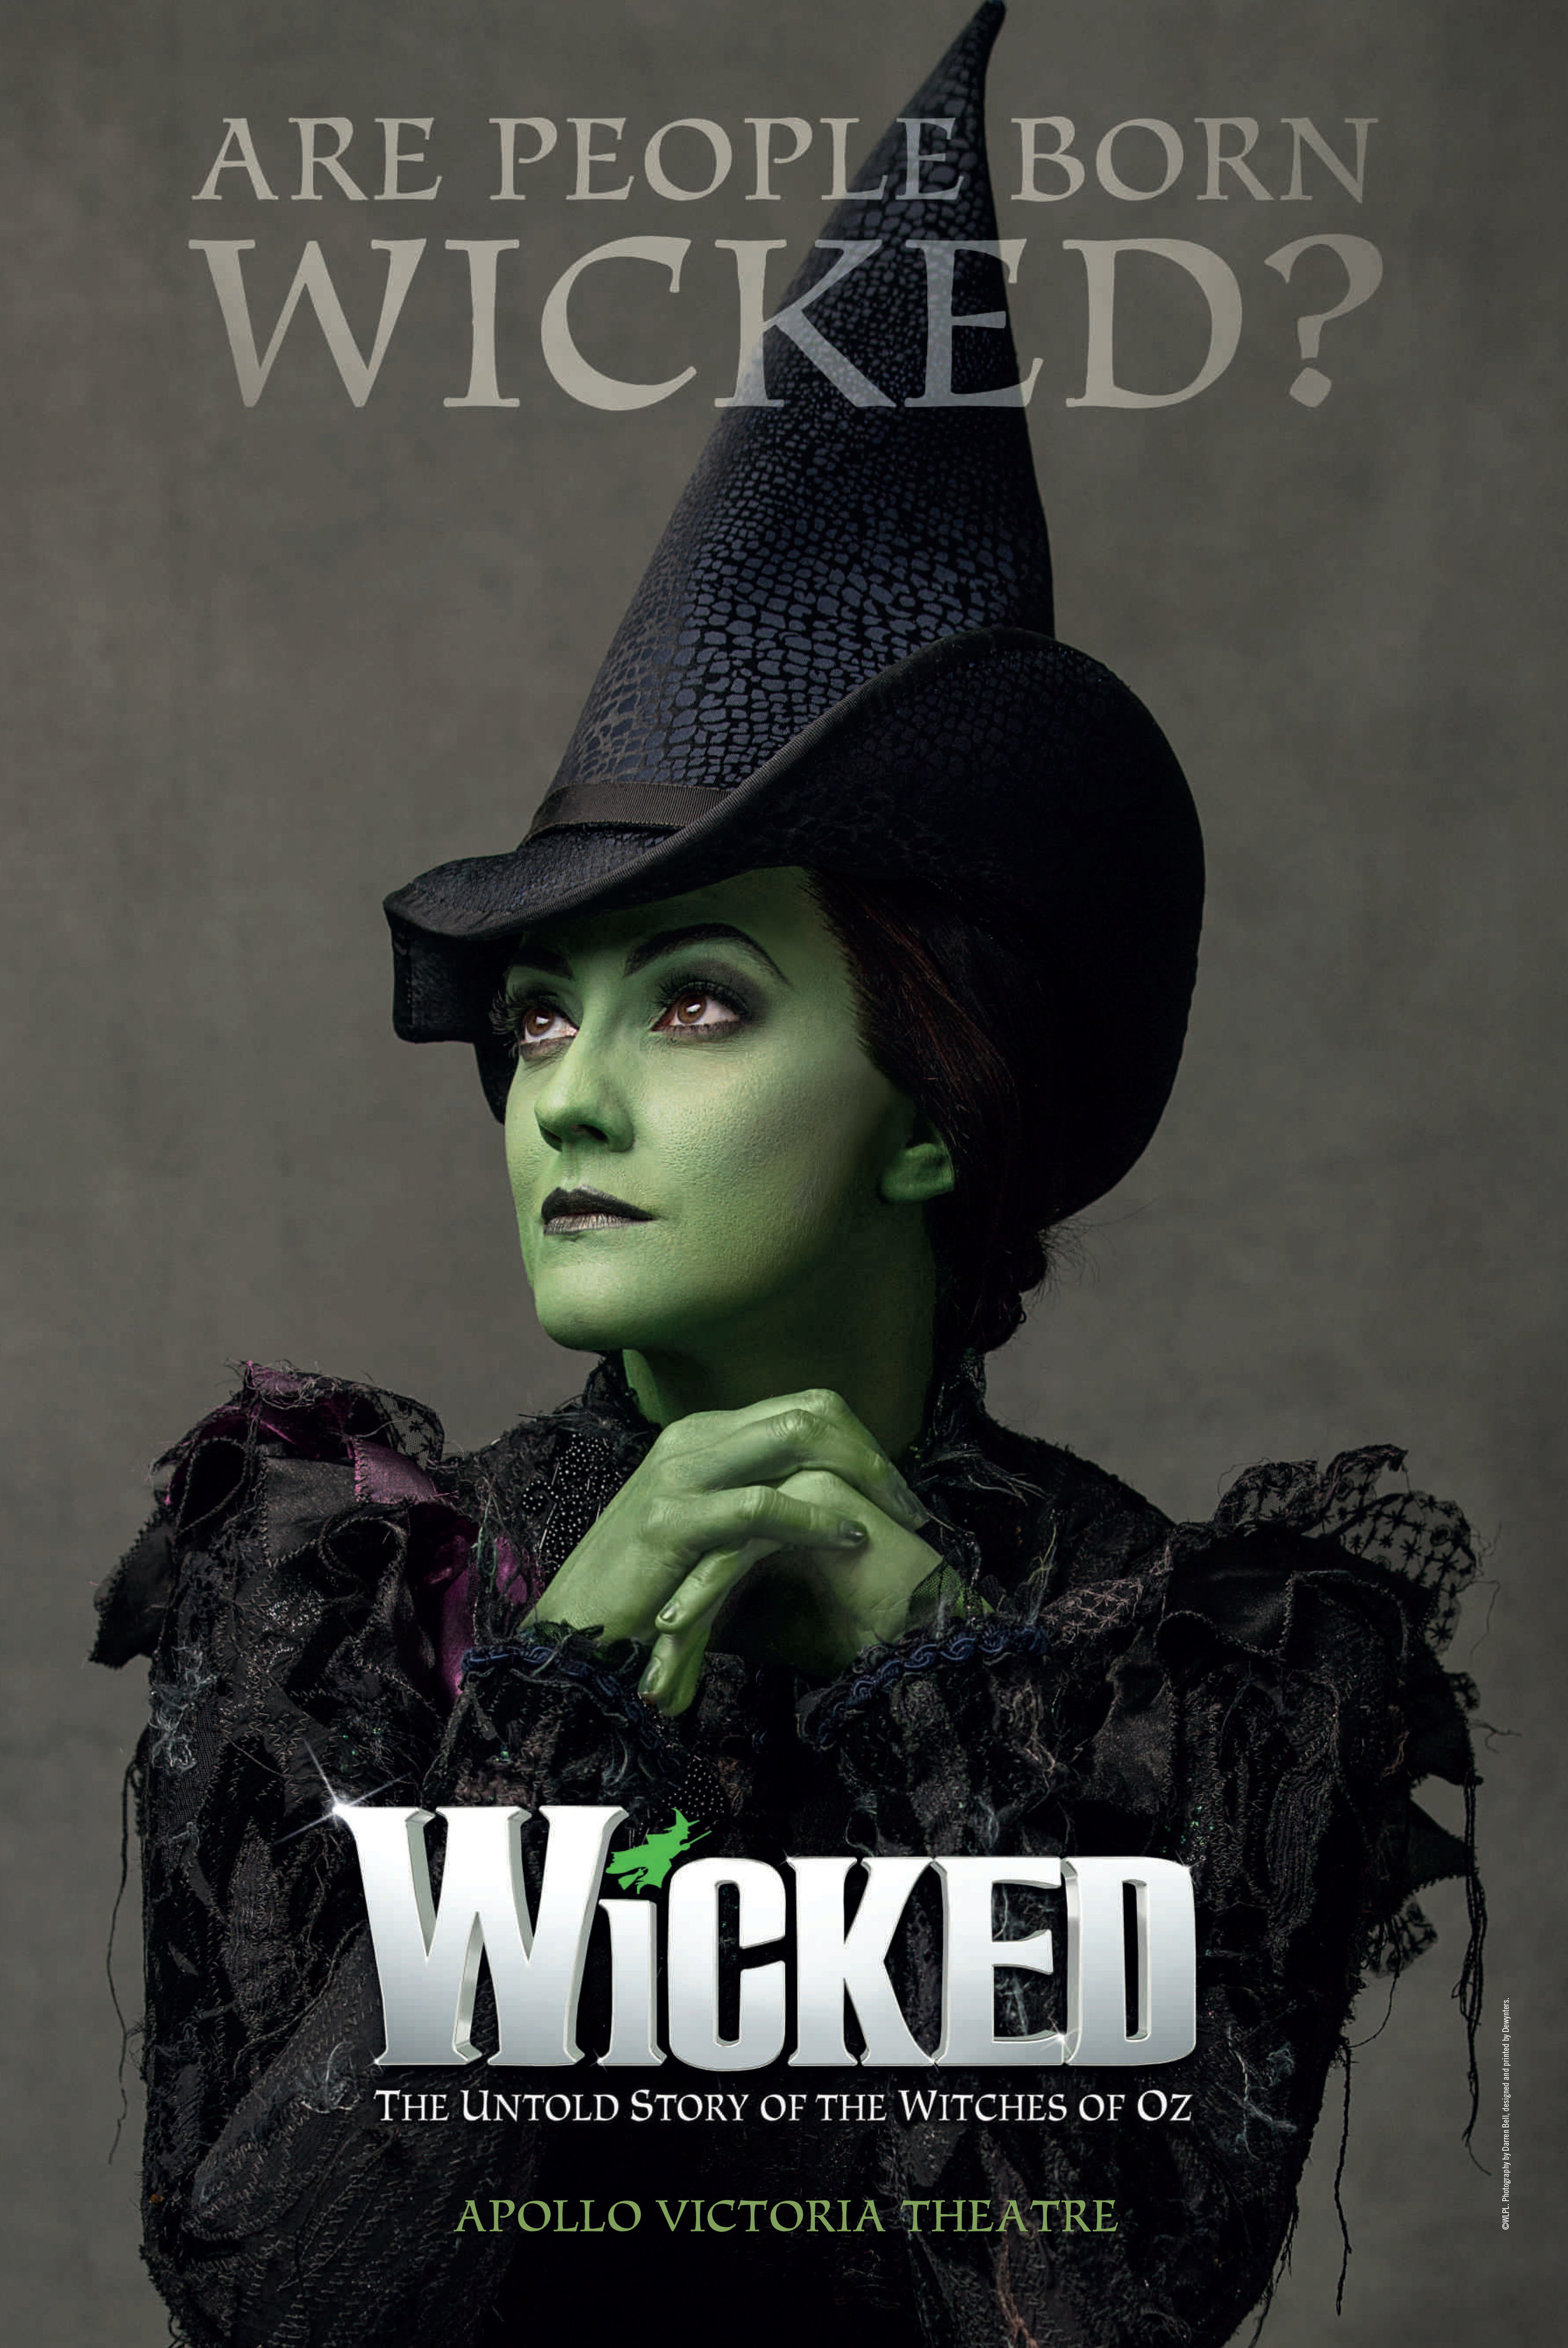 Wicked_Character_Backlit_6Sheet_1800x1200_AW.pdf_FINAL_AW_lowres[1].jpg